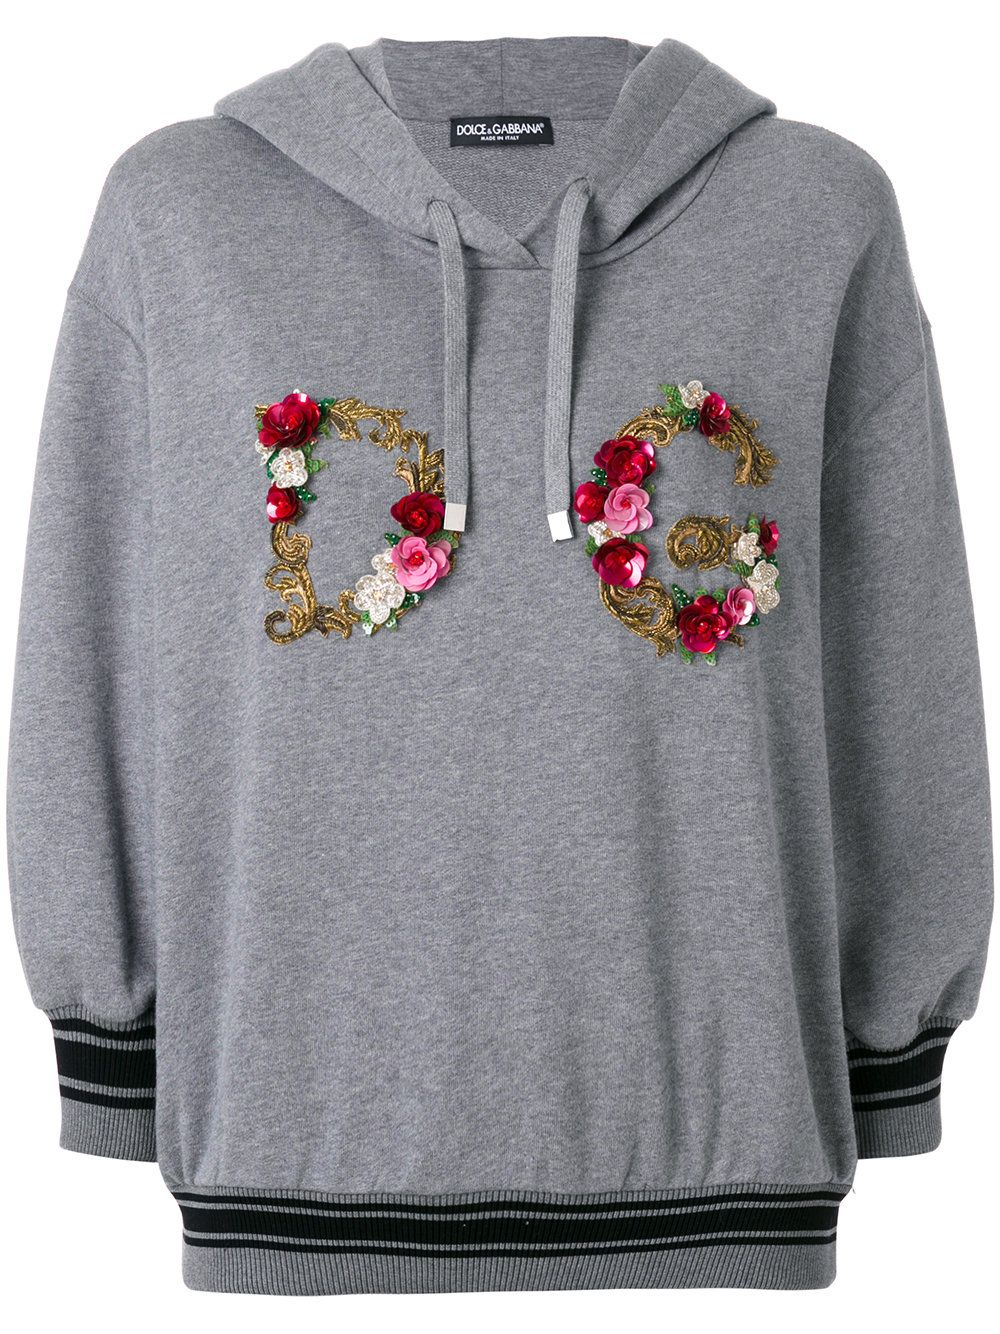 Dolce & Gabbana floral embroidery logo hoodie Hoodies